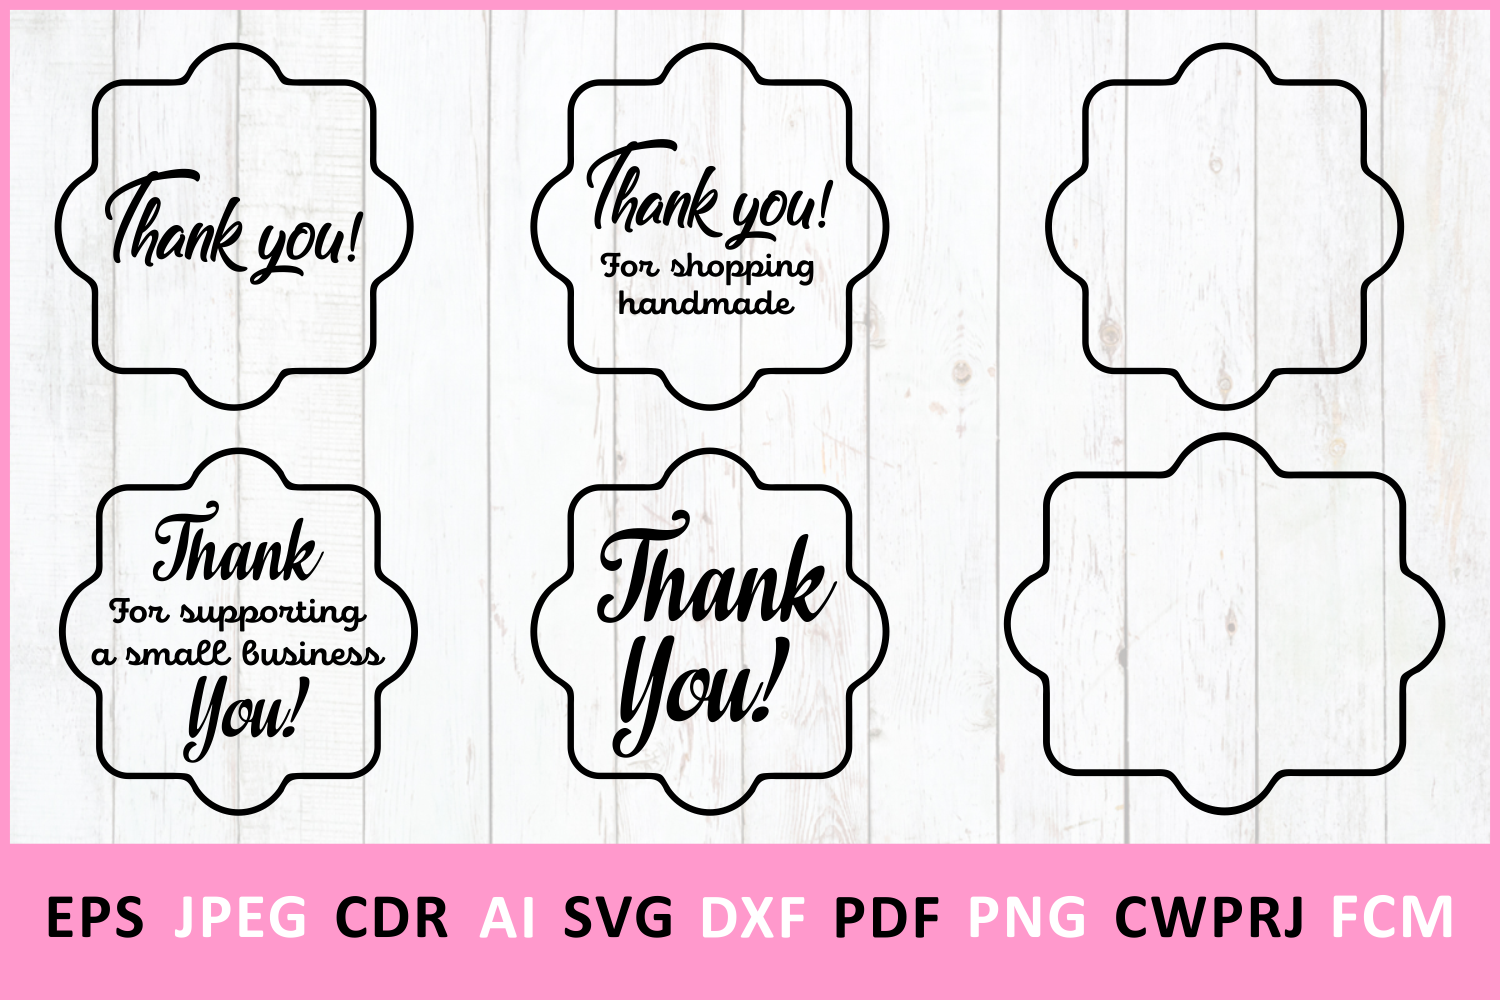 Download Free Thank You Graphic By Millerzoa Creative Fabrica for Cricut Explore, Silhouette and other cutting machines.